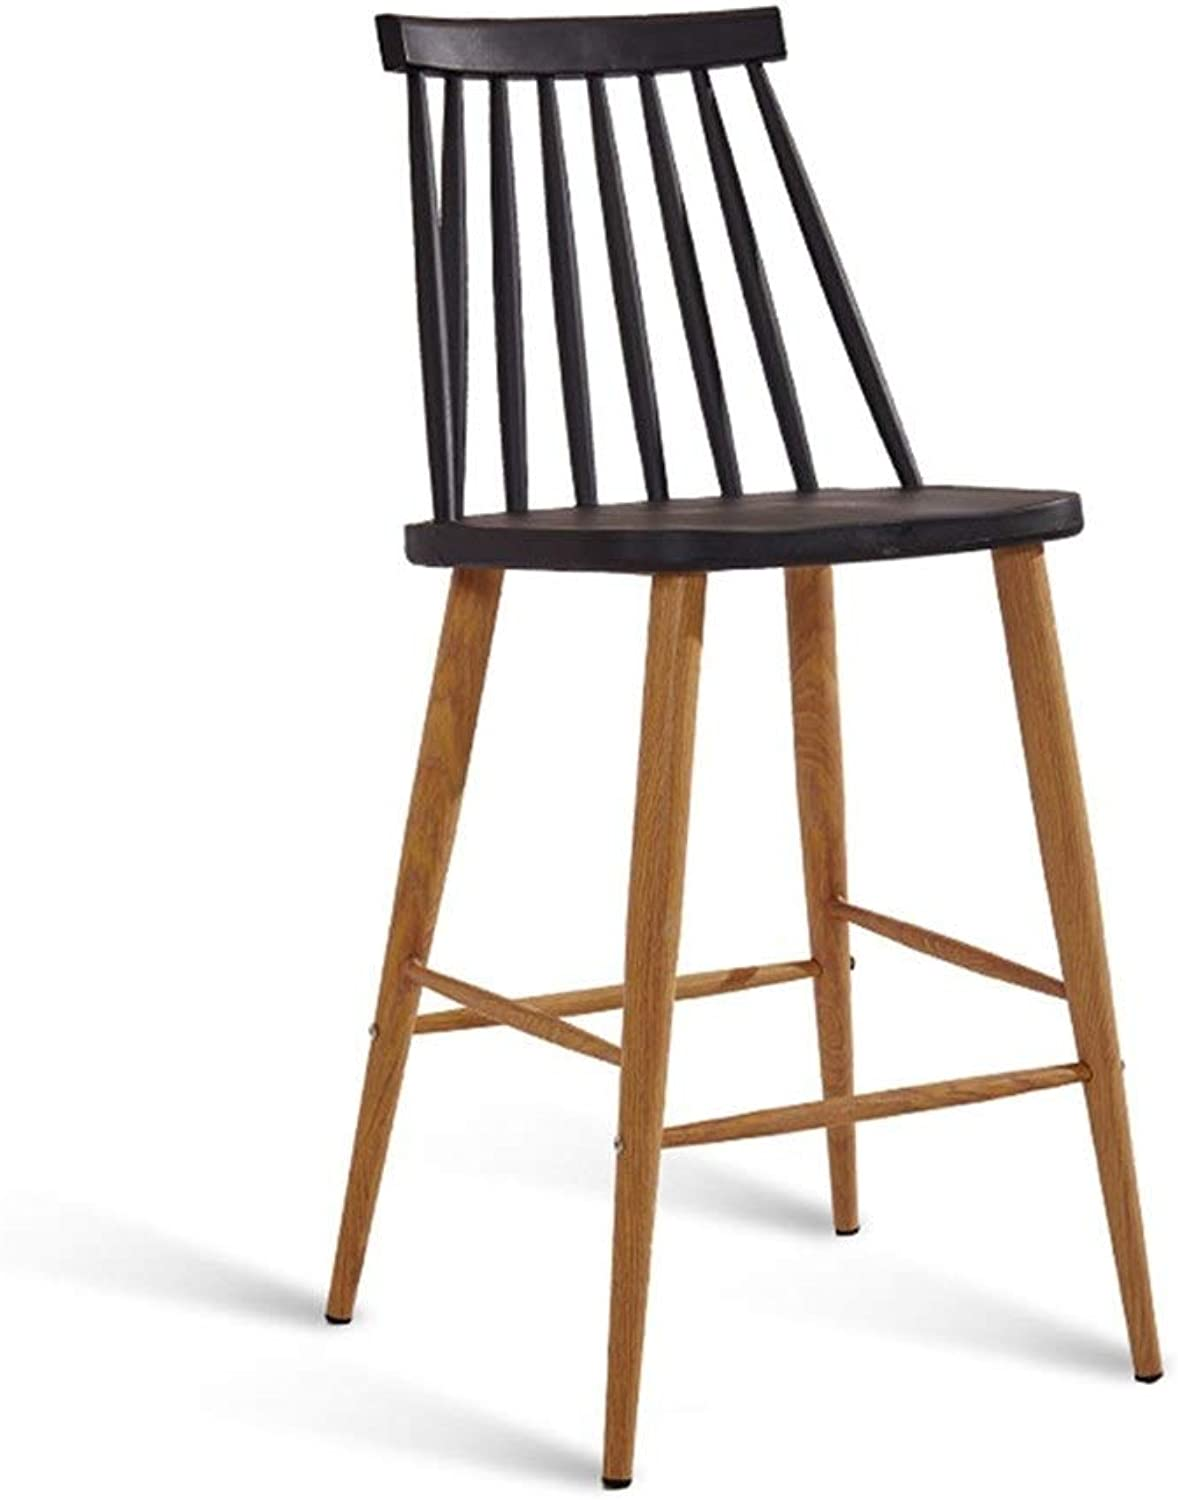 Floor-Standing high Bracket Bar Chair Modern Simple High Stool Bar Table and Chair Bar Stool Industrial Wind High Leg Bar Chair Suitable for Counter Kitchen Breakfast Chairs